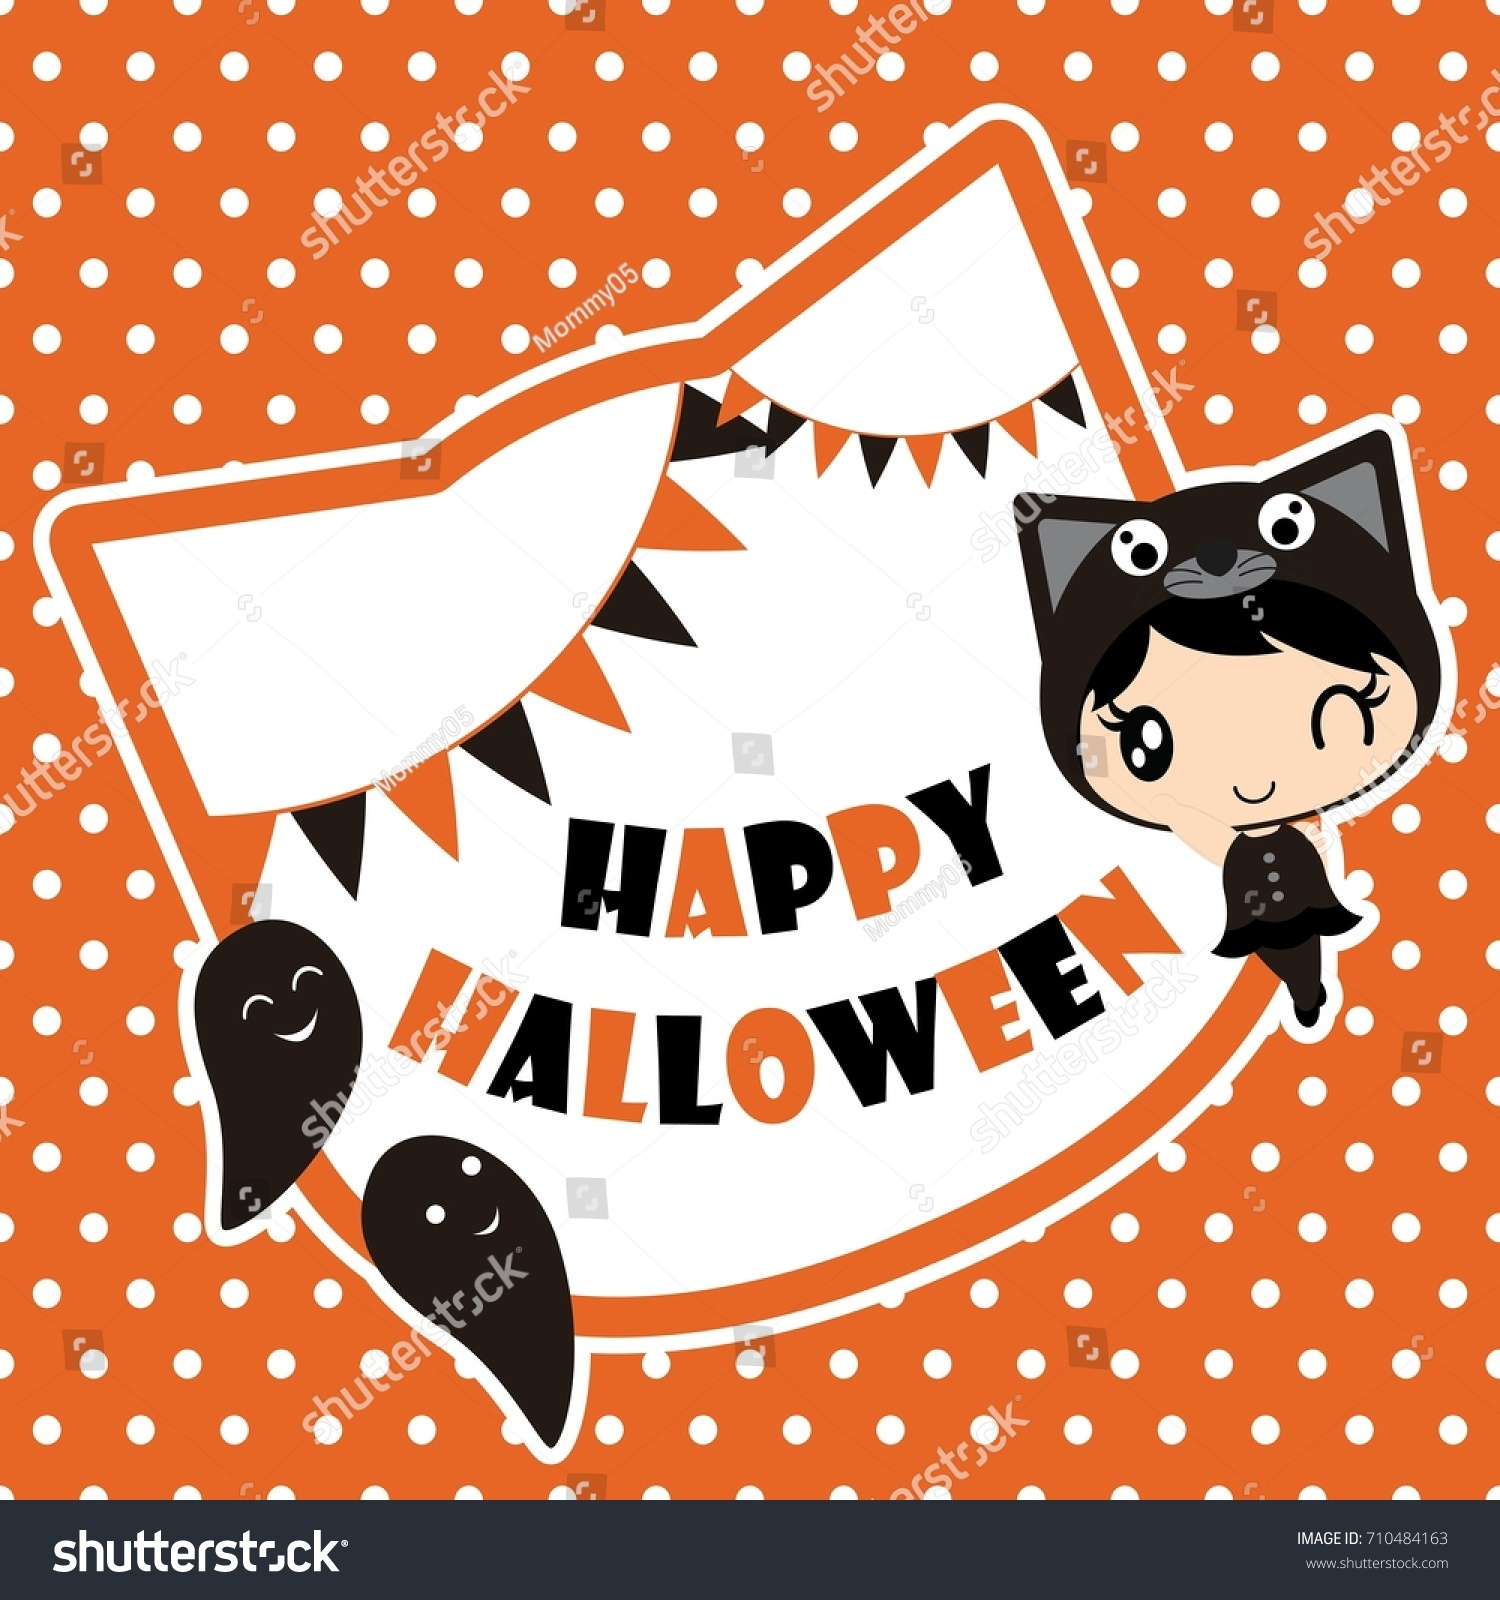 Best Wallpaper Halloween Polka Dot - stock-vector-cute-black-cat-girl-with-ghosts-on-polka-dot-background-vector-cartoon-illustration-for-halloween-710484163  Perfect Image Reference_608434.jpg